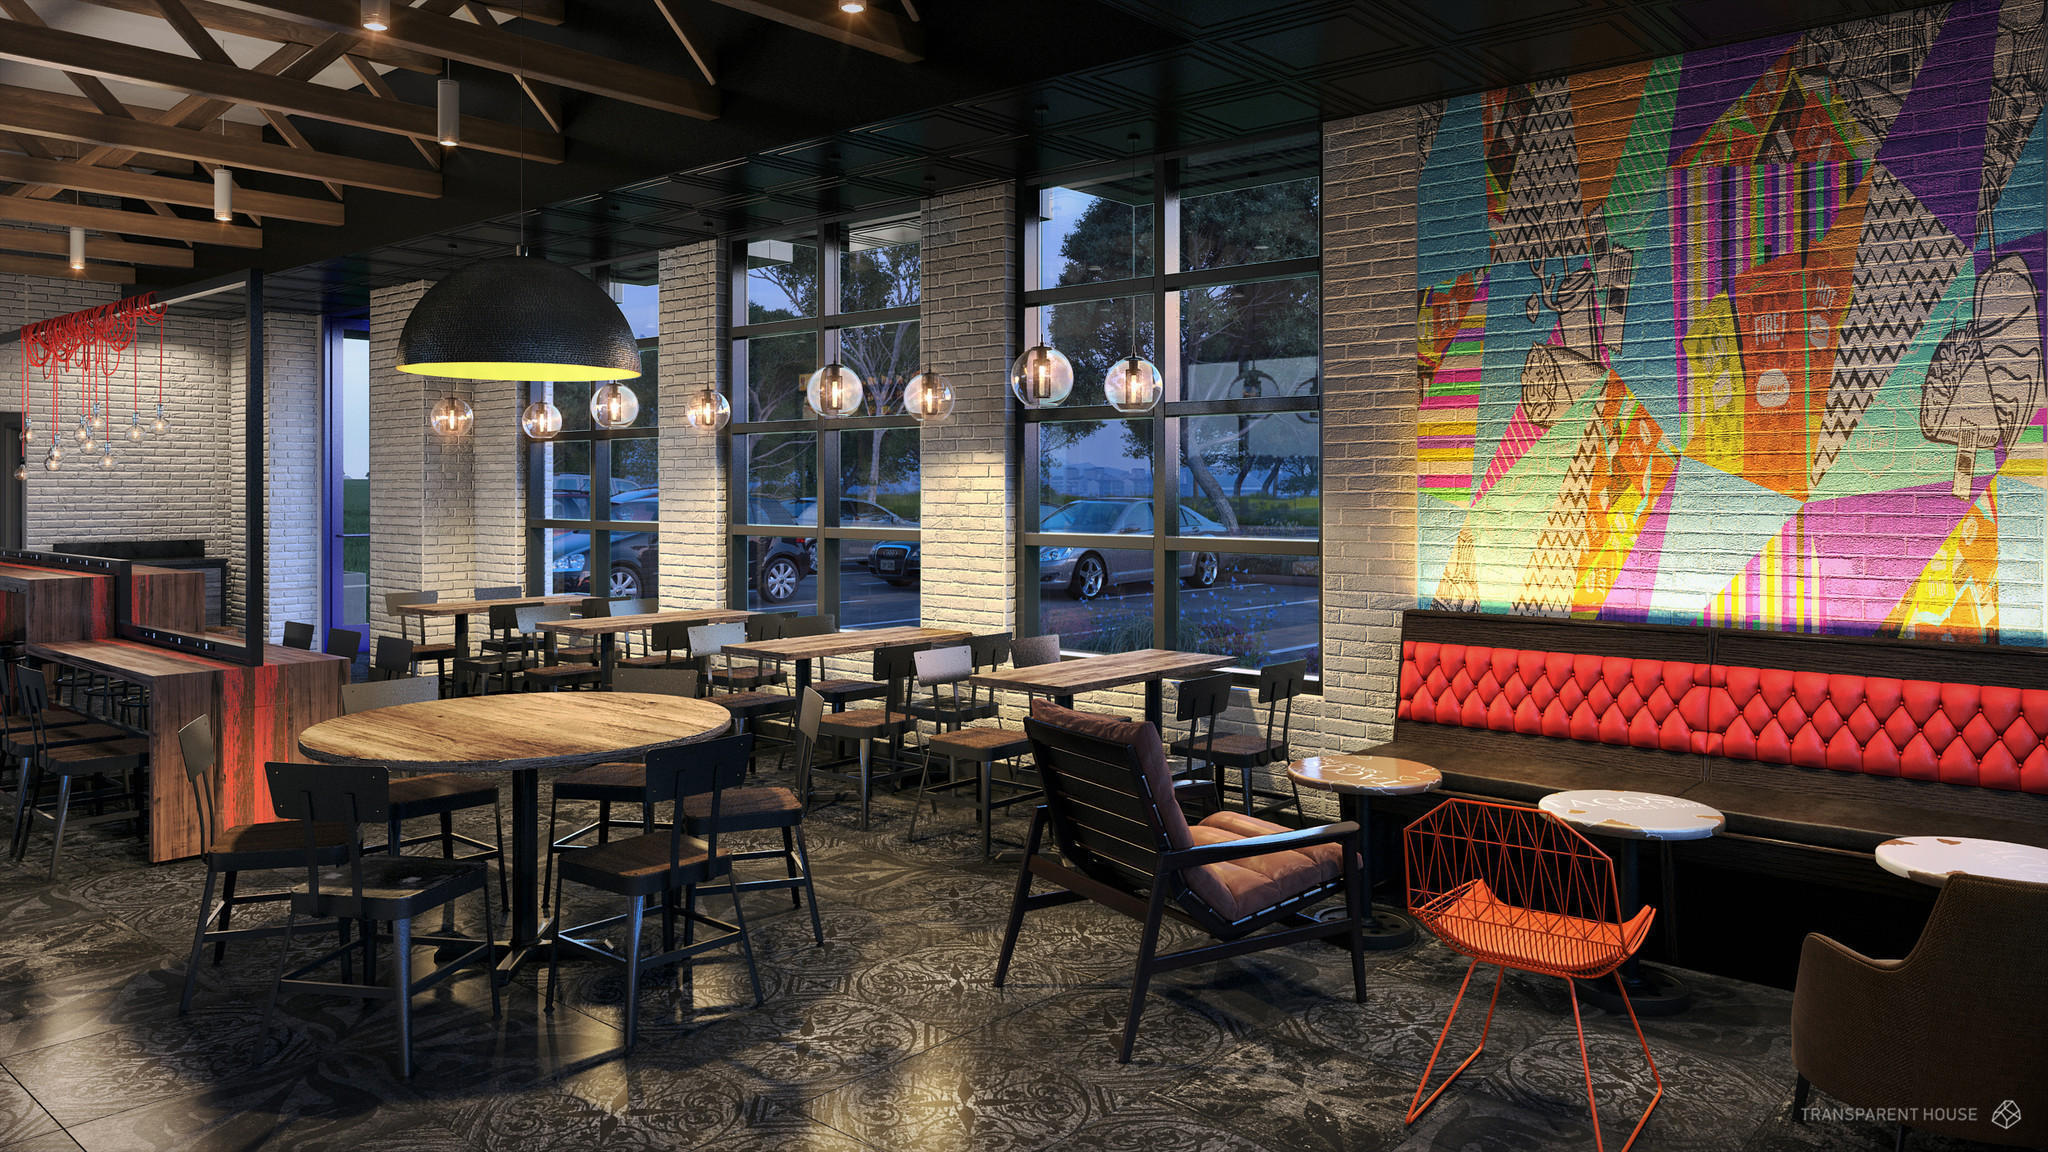 Taco bell hopes its new restaurant designs will entice you